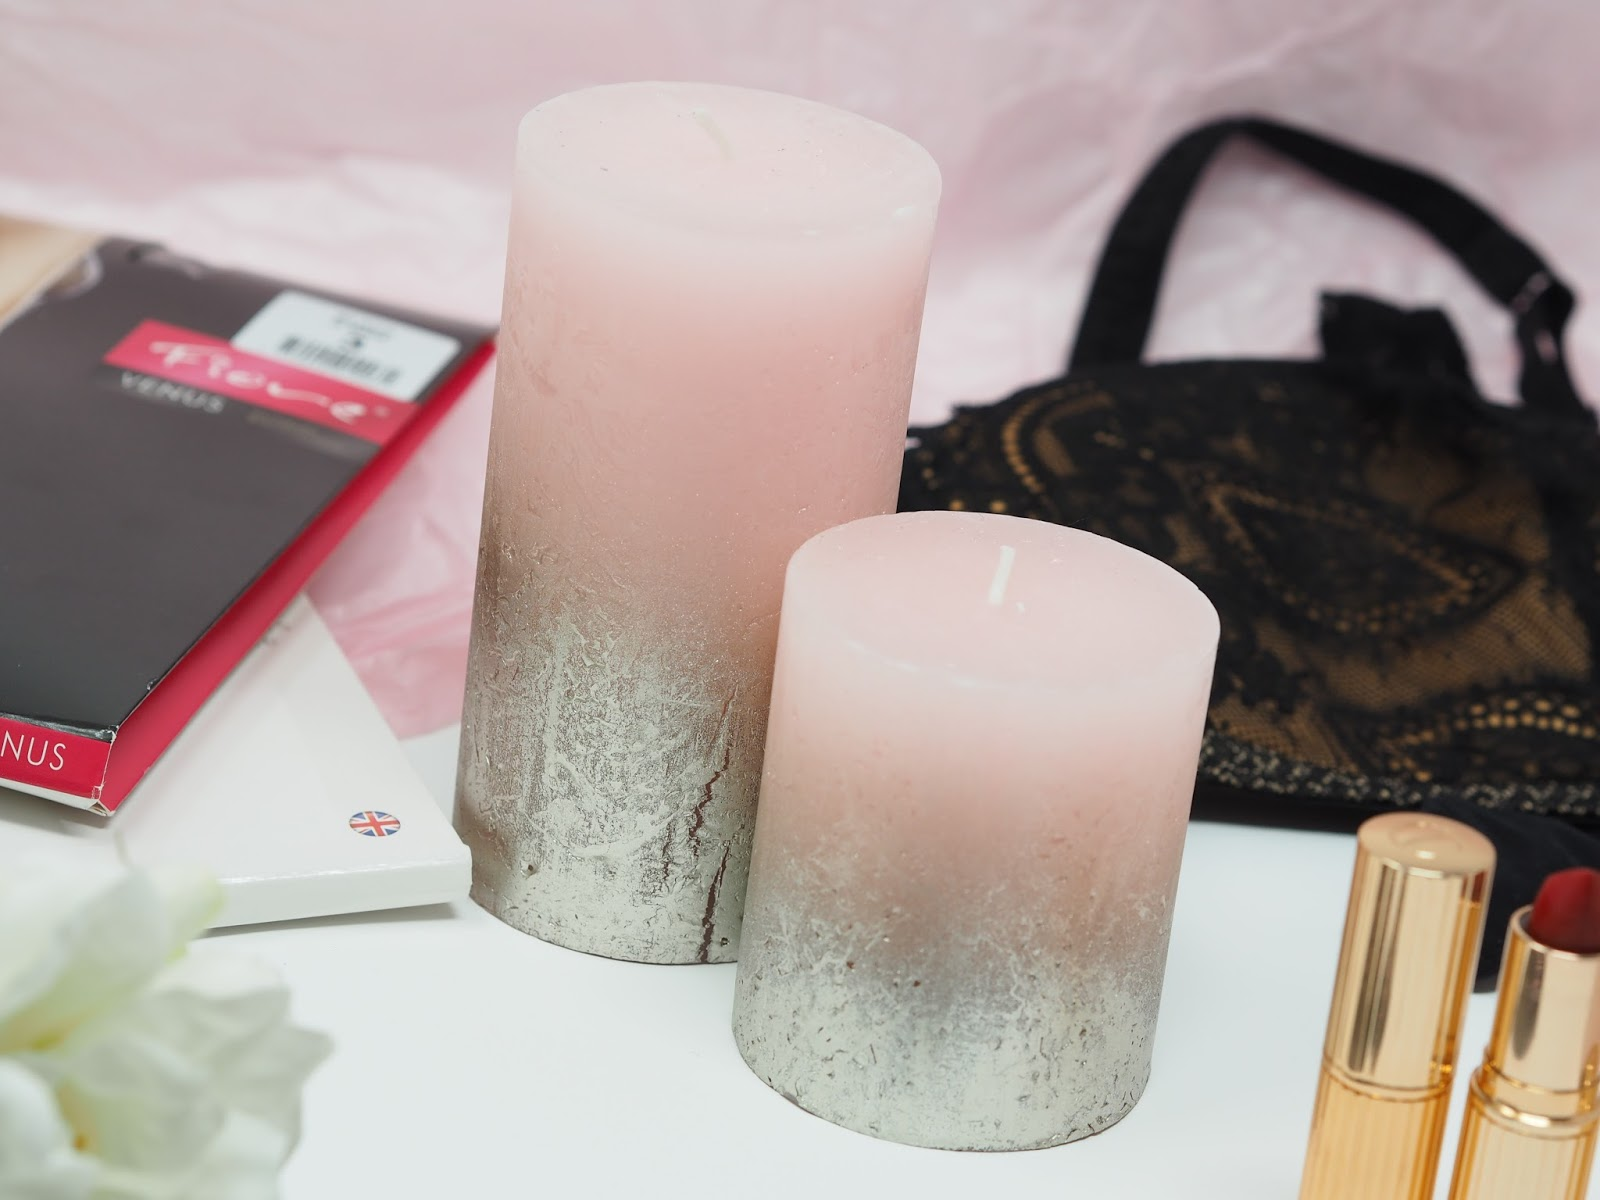 valentines gifts presents candles flatlay